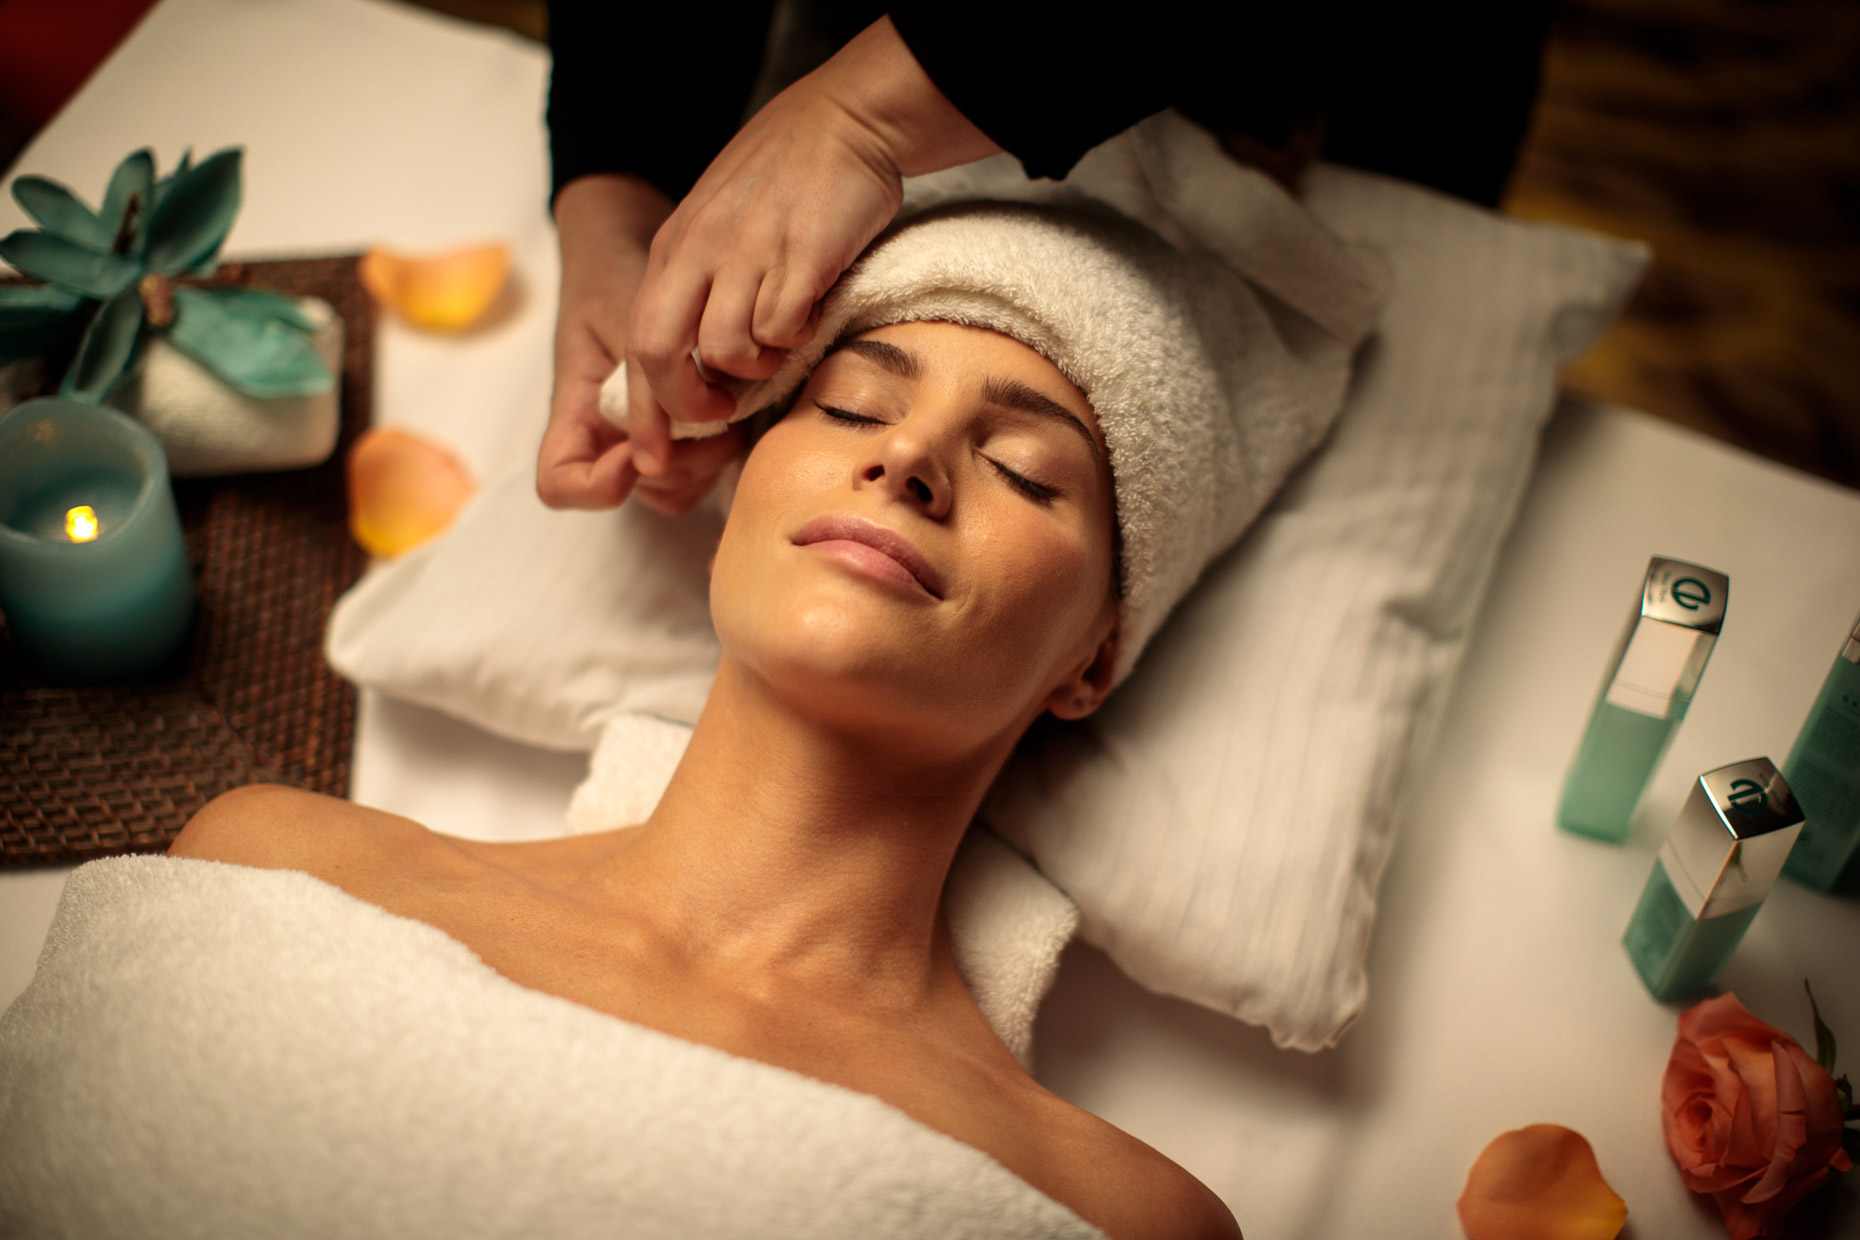 Woman receives a facial at a spa